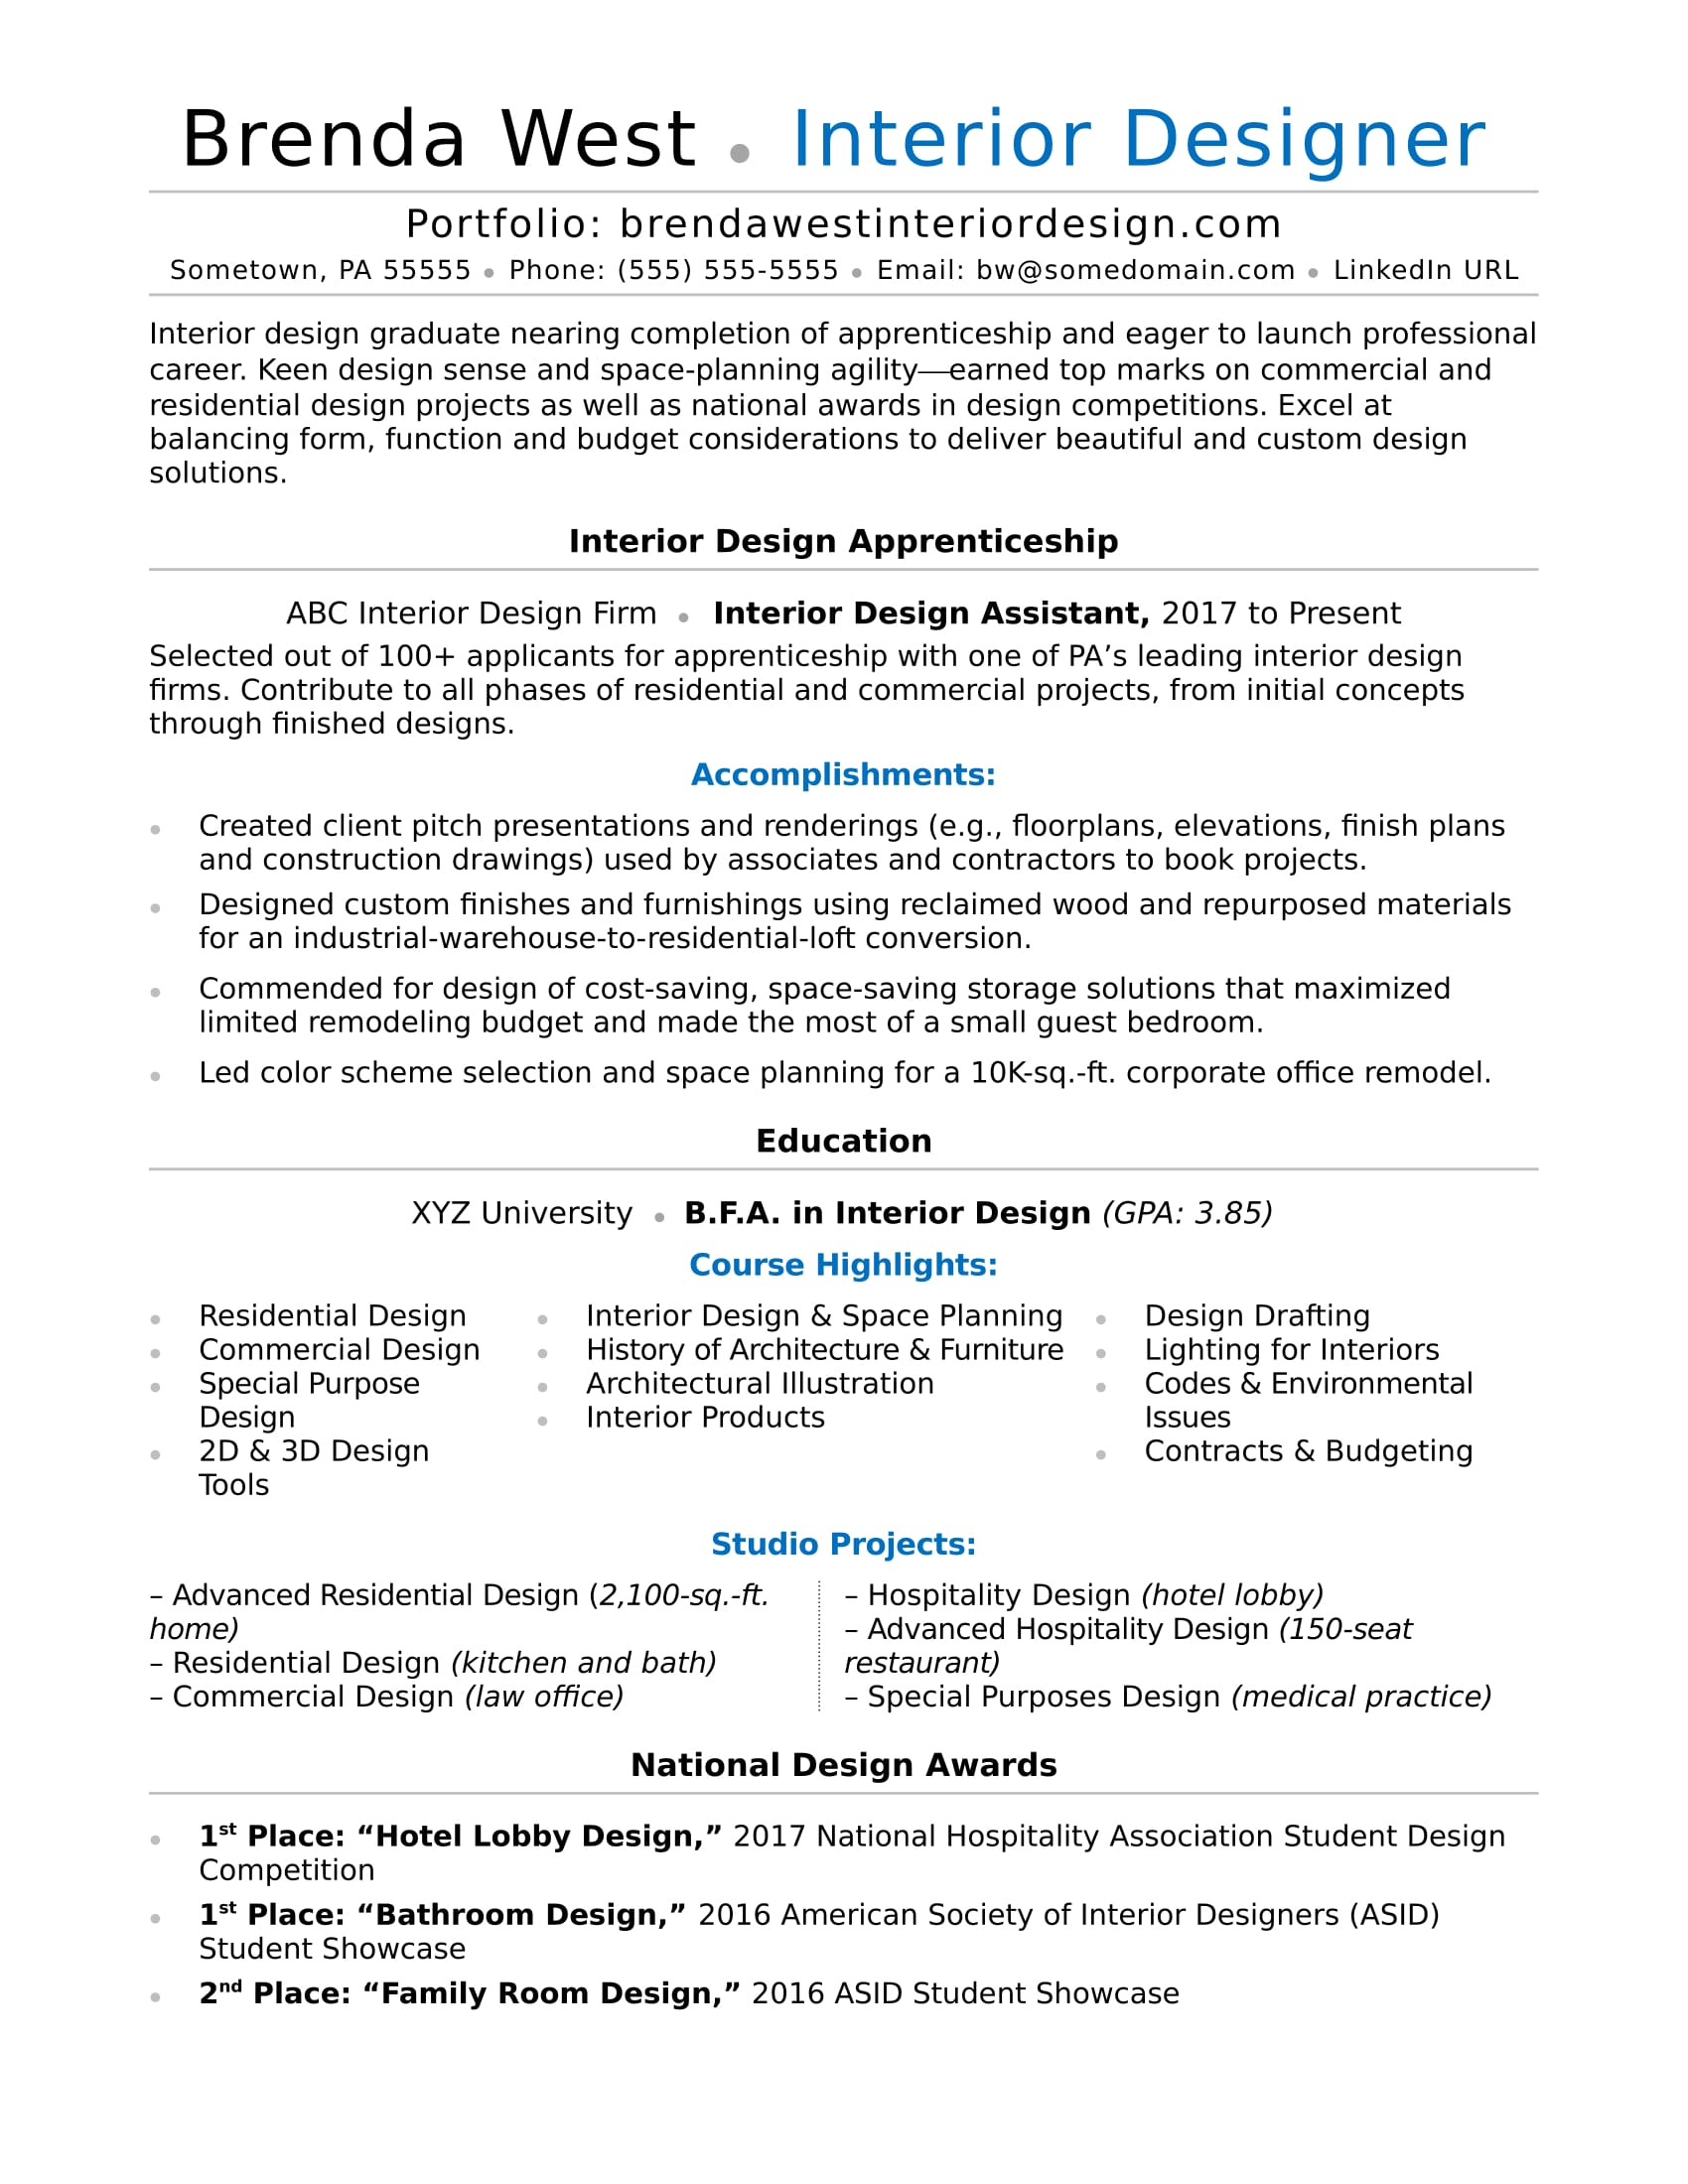 Interior Design Resume Sample Regarding Interior Design Resume Examples